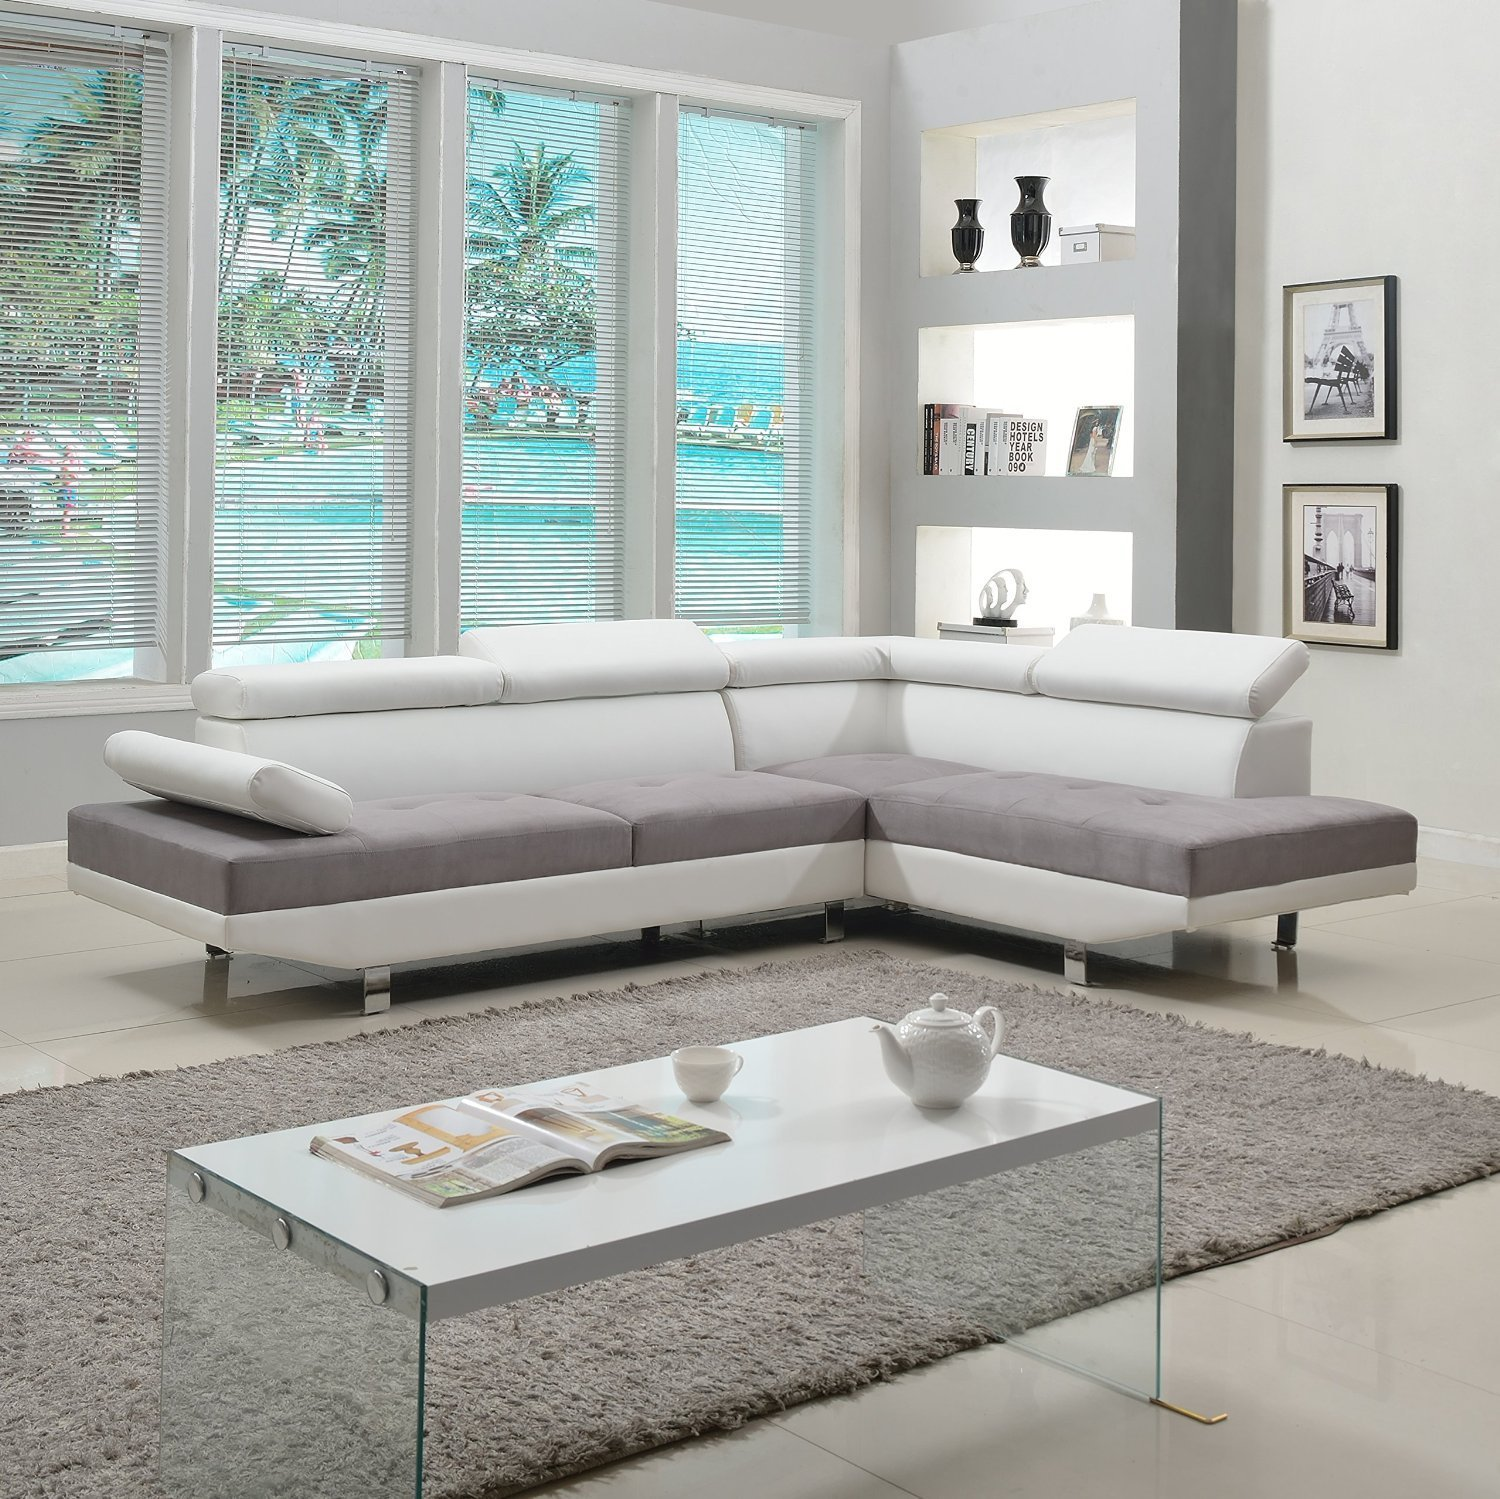 Modern Sofa Chair Designs: Modern Living Room Furniture Review